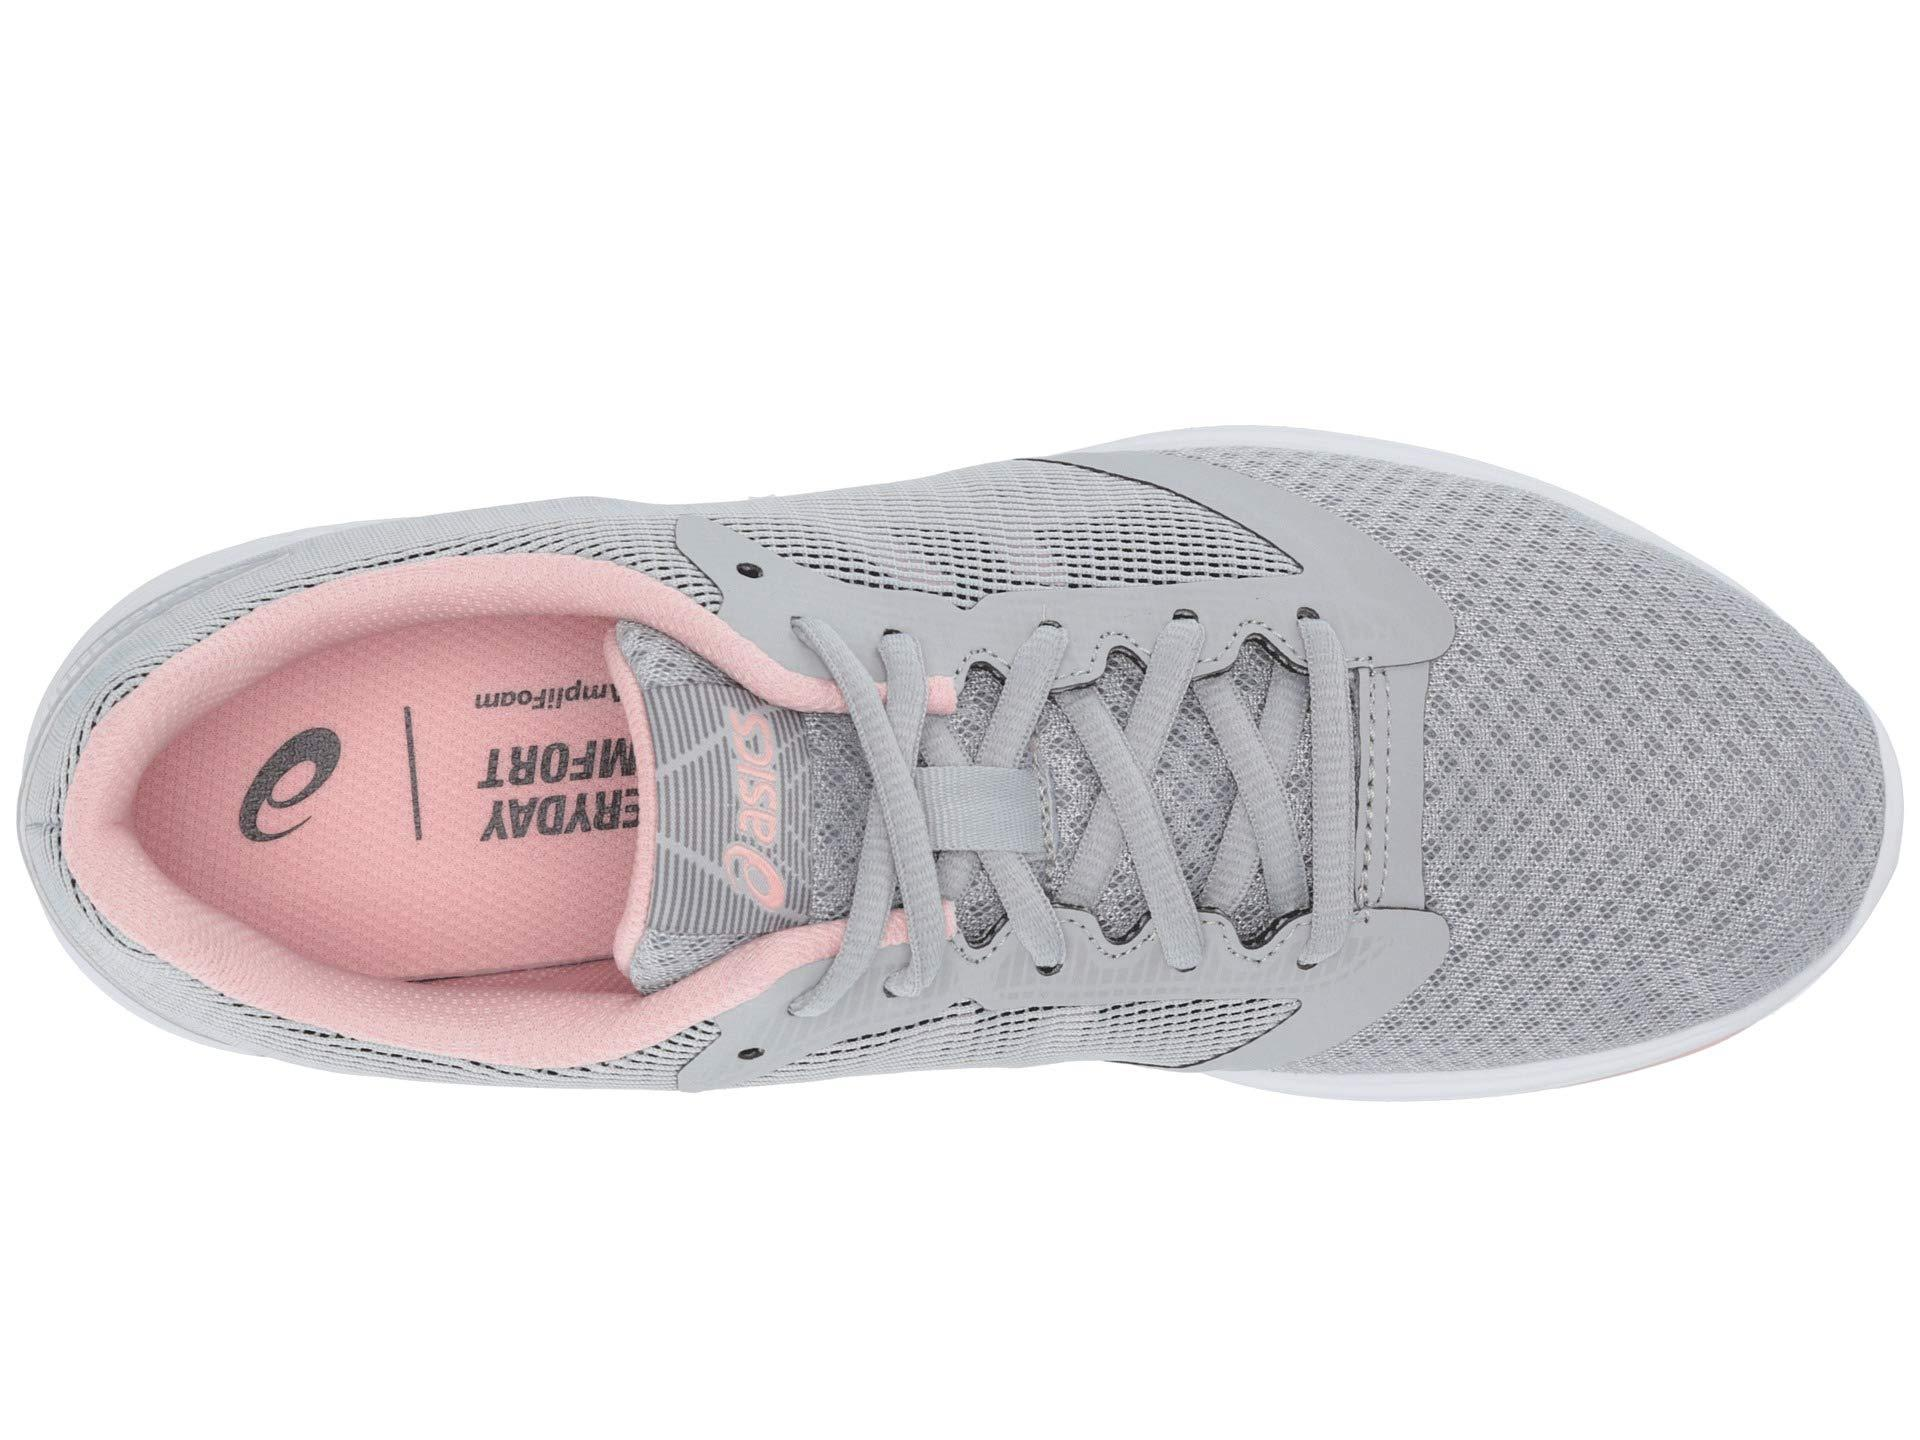 791a6a1b1bfd Lyst - Asics Patriot 10 in Gray - Save 22%